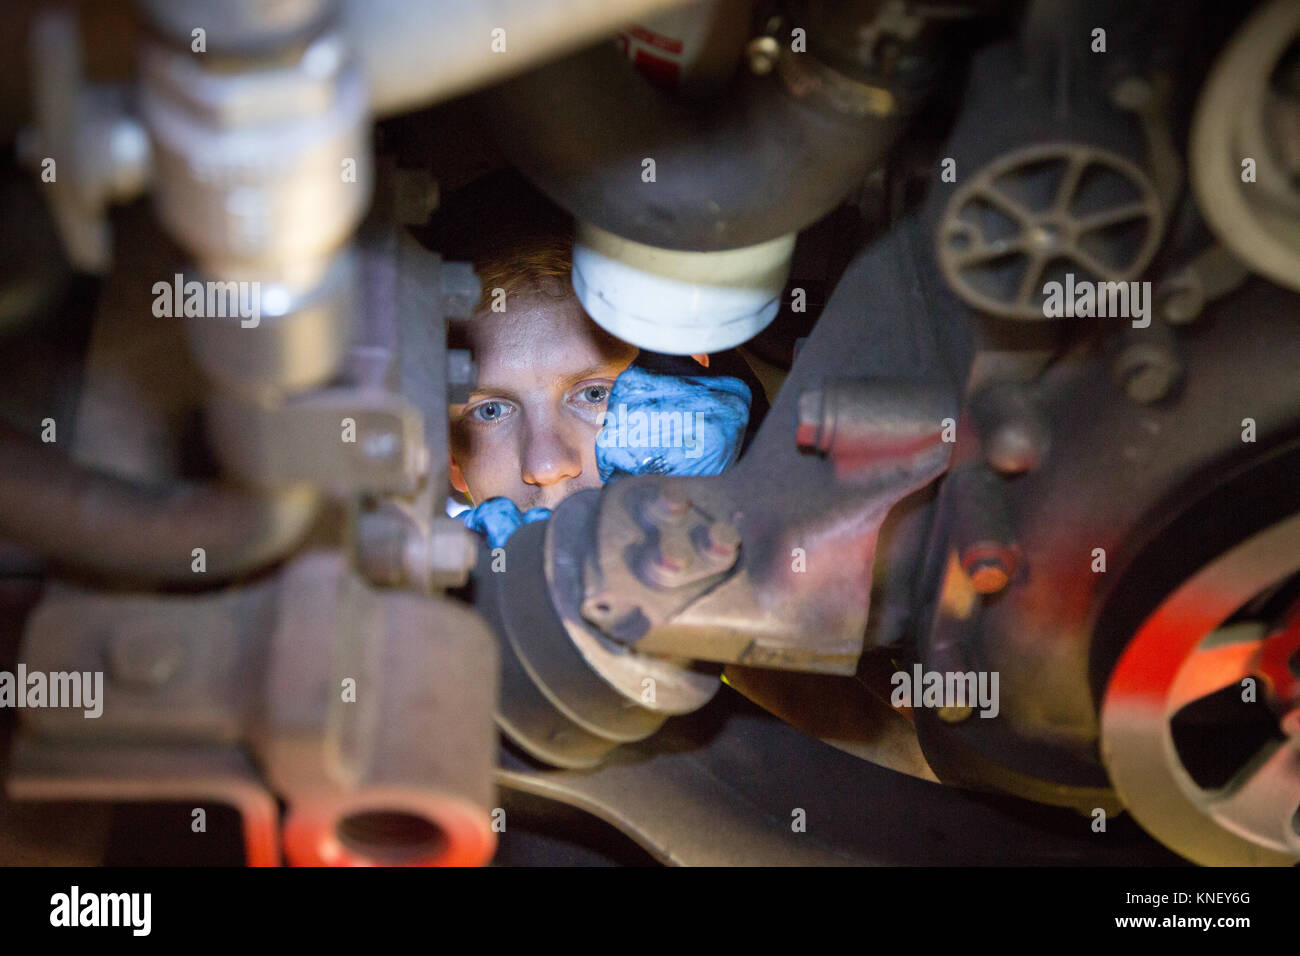 A mechanic working on the engine of a bus from underneath. - Stock Image